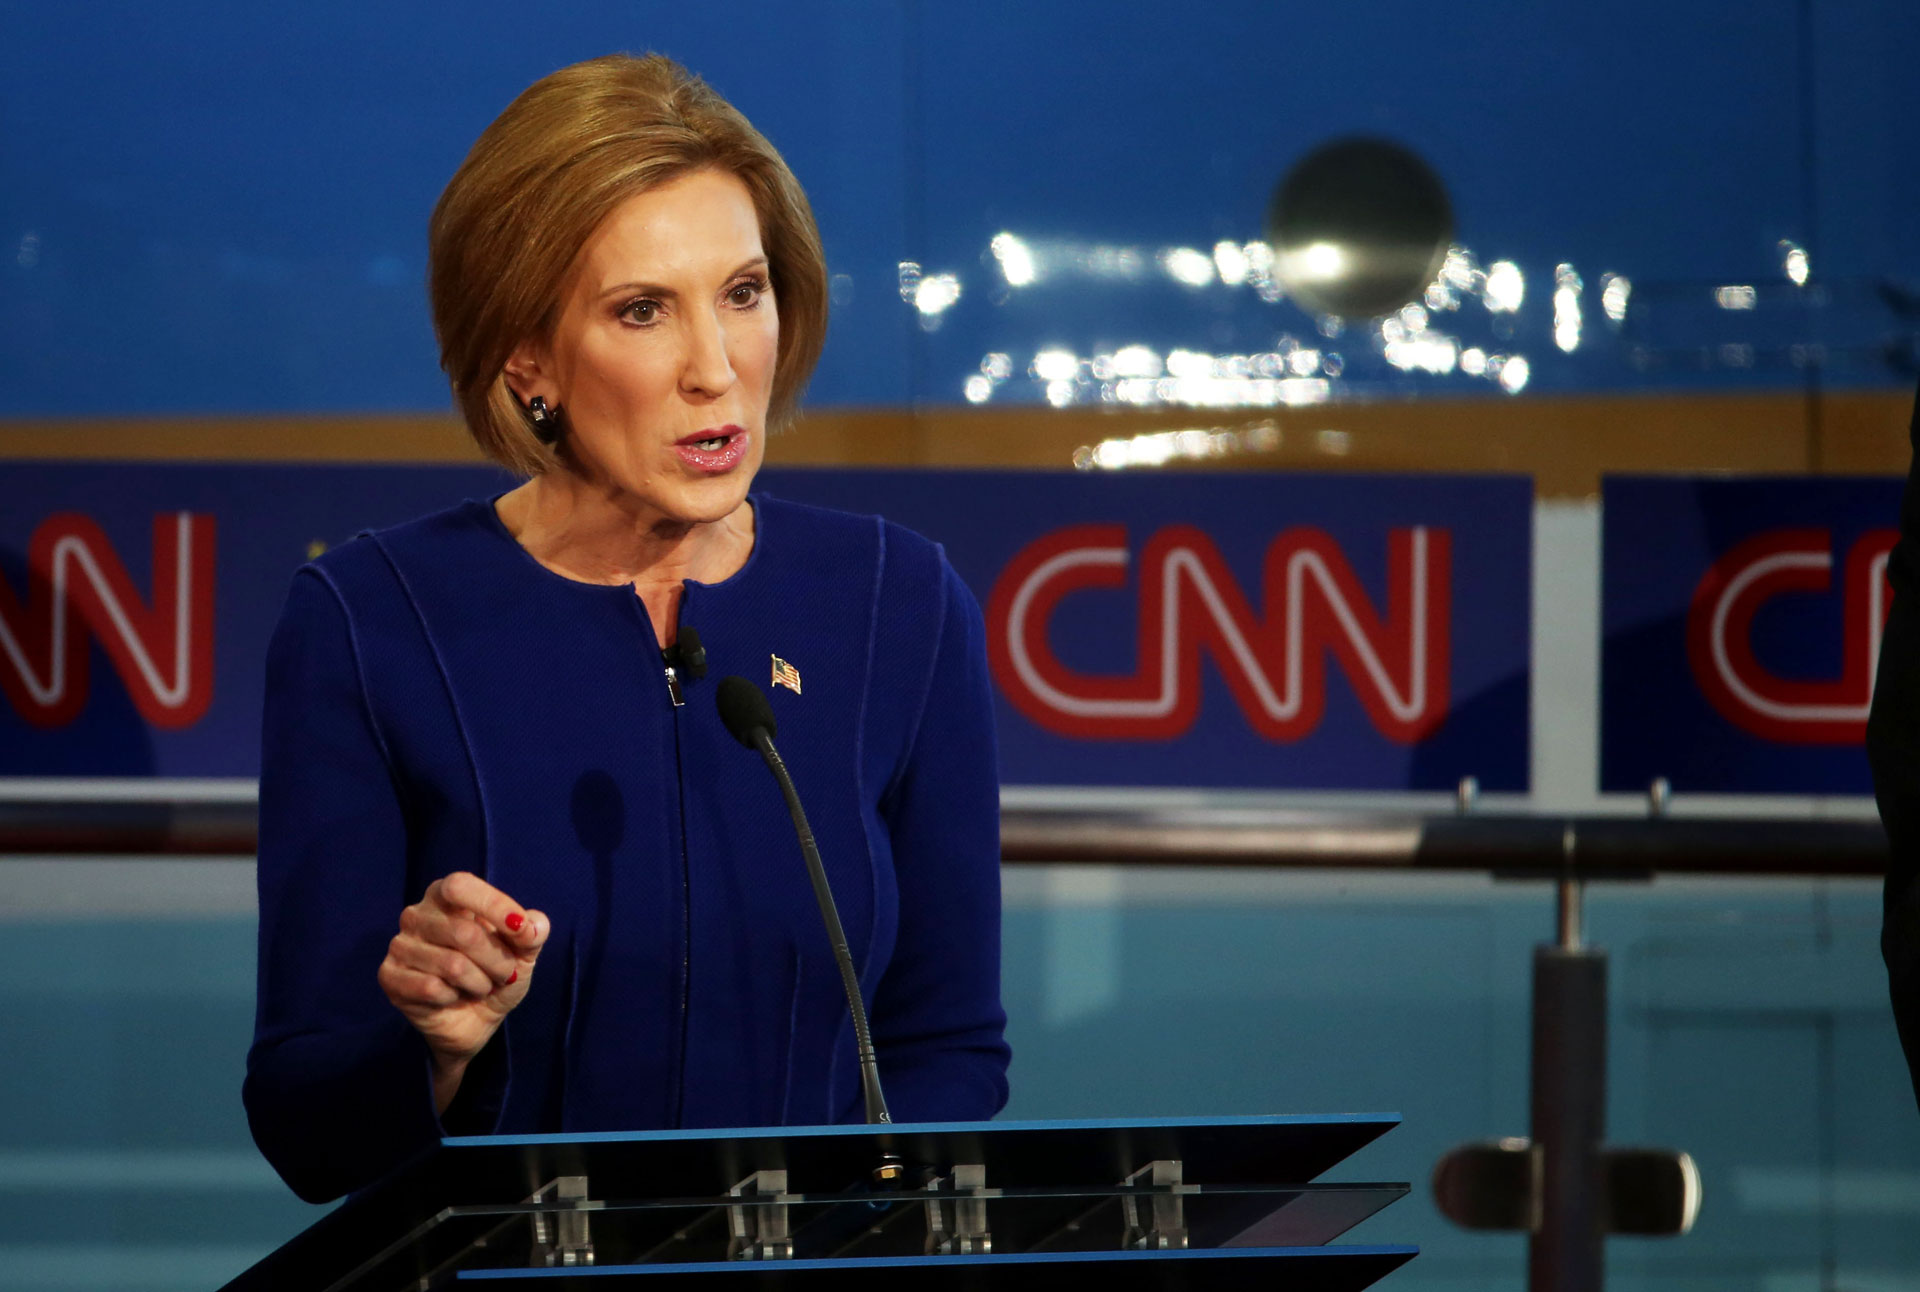 Carly Fiorina takes part in the GOP presidential debate at the Reagan Library on September 16, 2015 in Simi Valley.